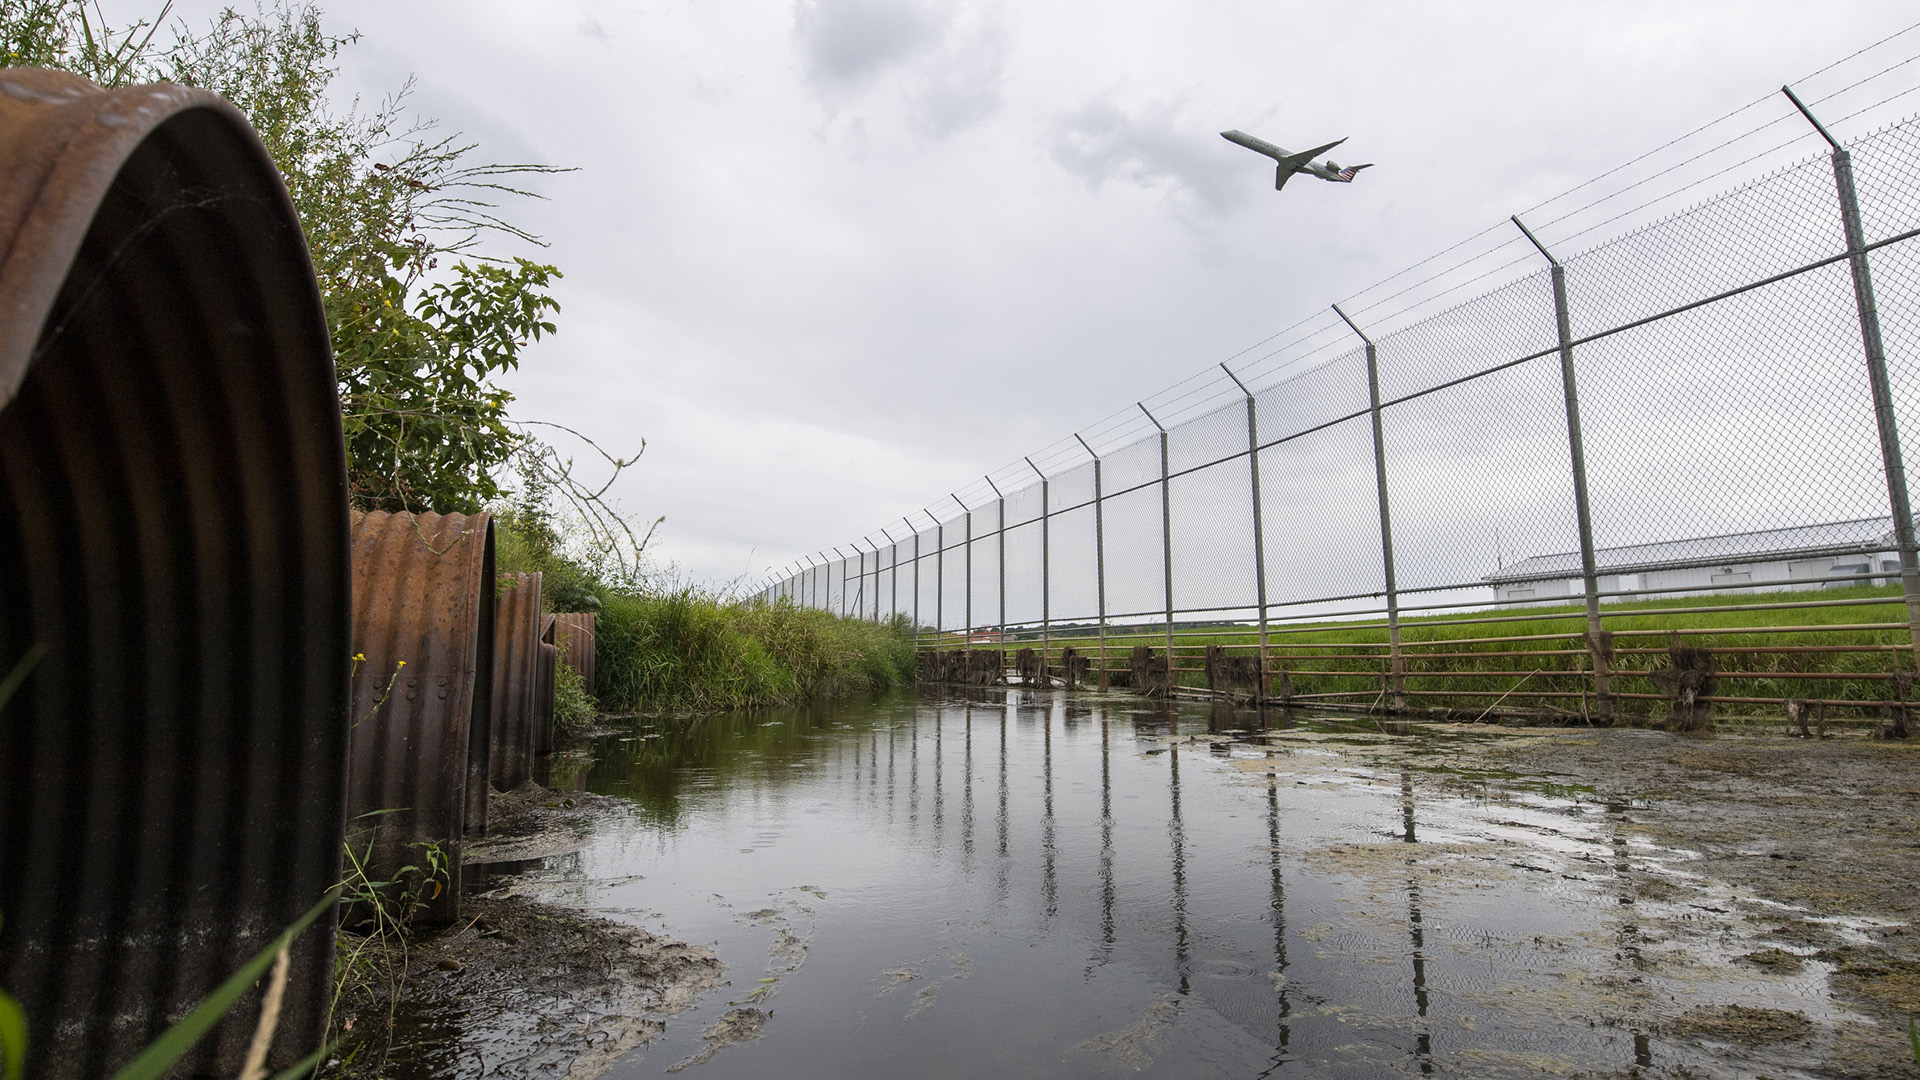 An airplane ascends over a chain-linked fence topped with barbed wire that faces a wetland area with rusty culvert mouths.